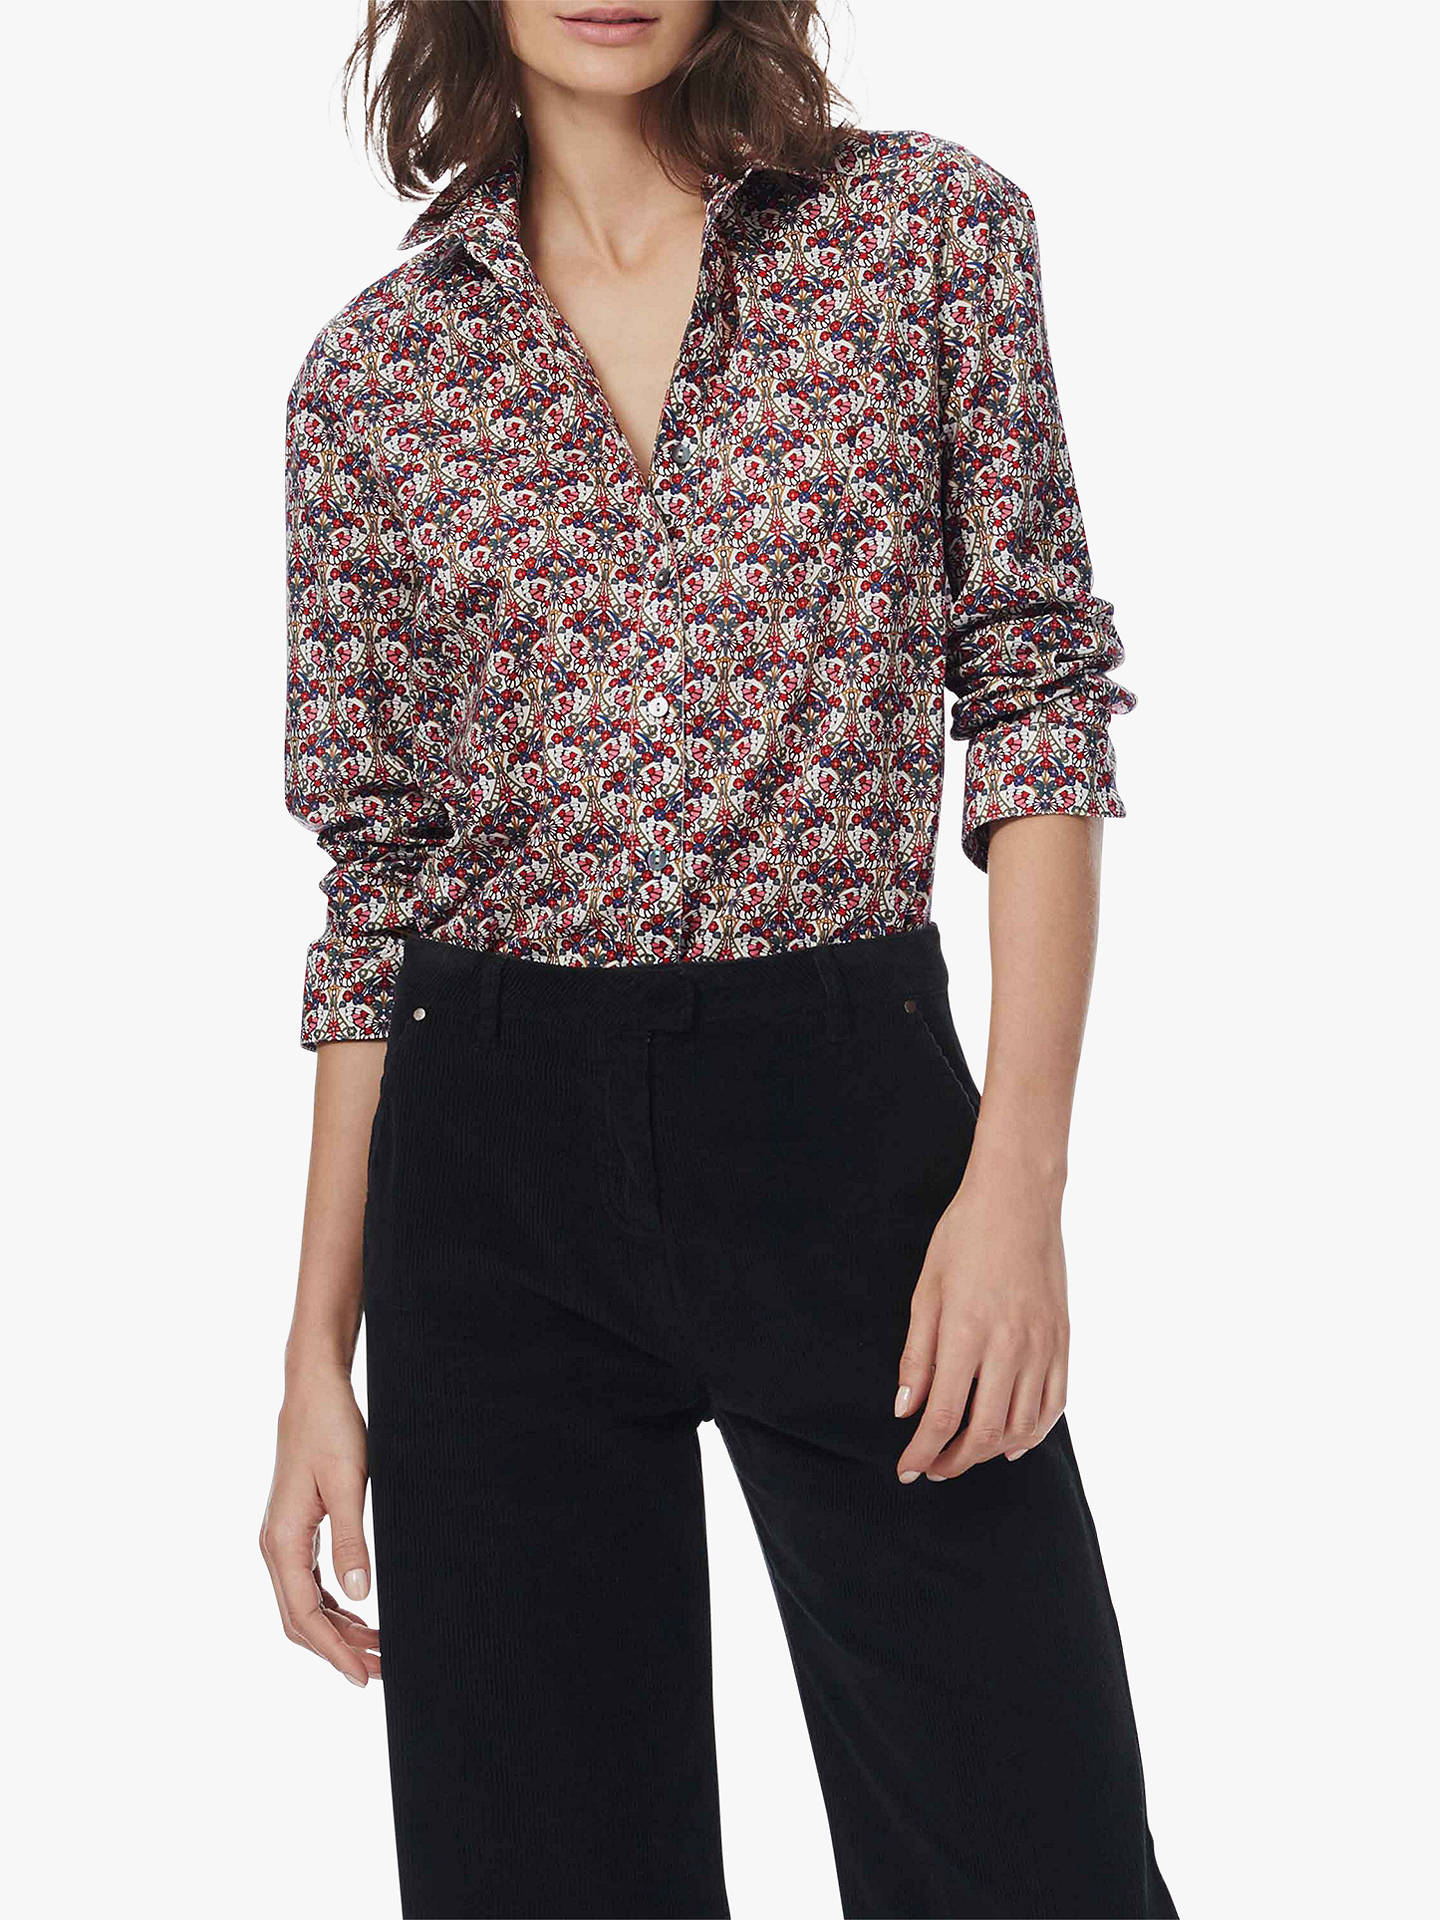 c4b52eede3 Buy Brora Cotton Liberty Lawn Shirt, Fig Butterfly, 6 Online at  johnlewis.com ...